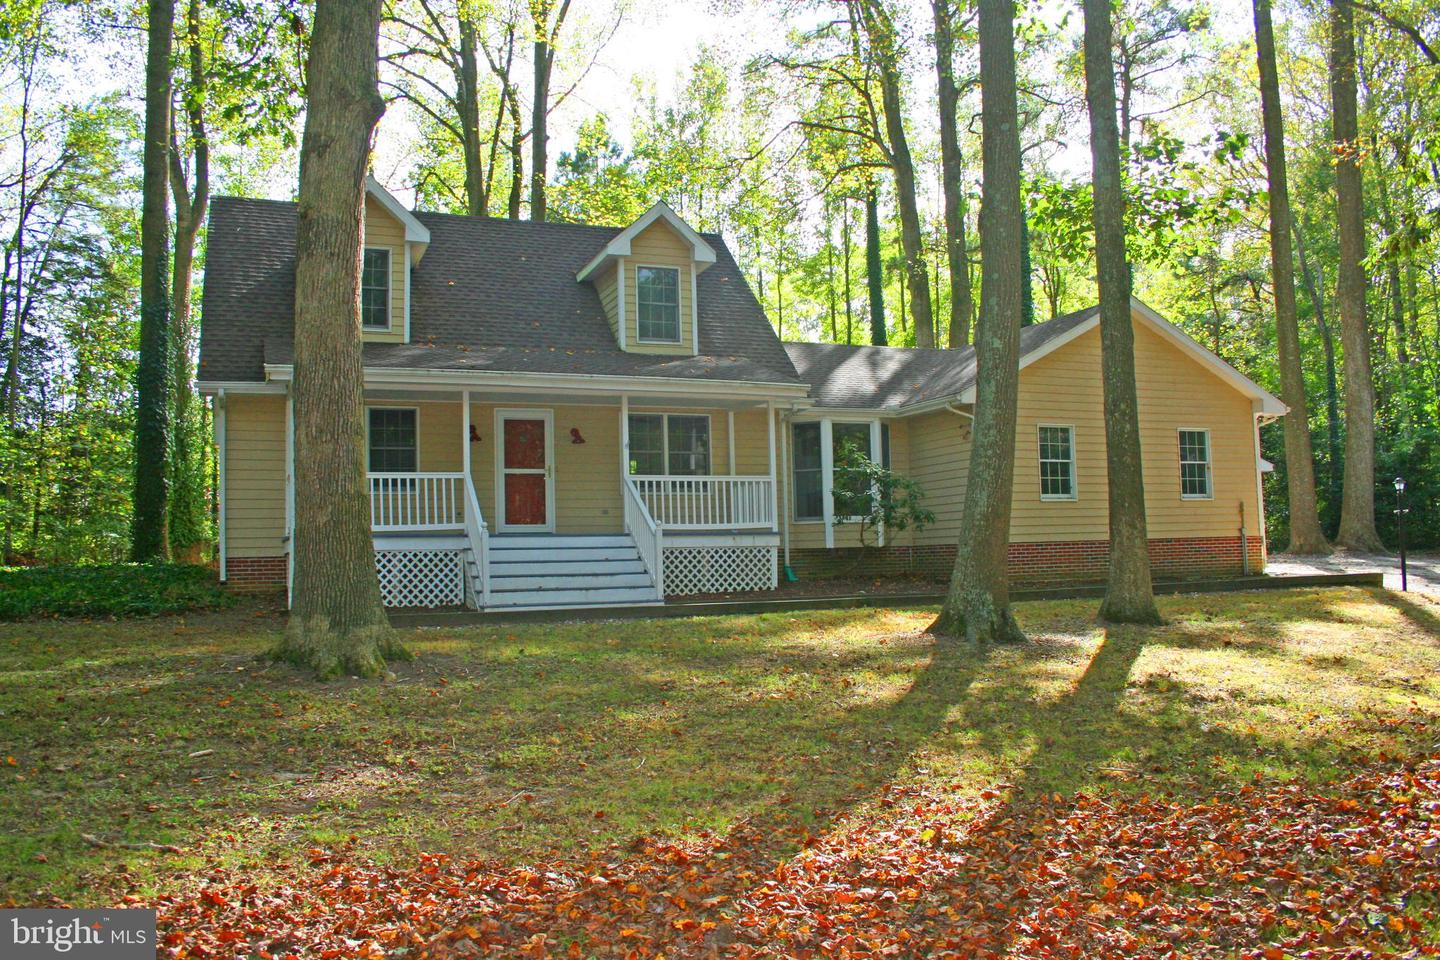 24 CRIPPLE CREEK RUN, MILTON, DE - Jack Lingo Realtor